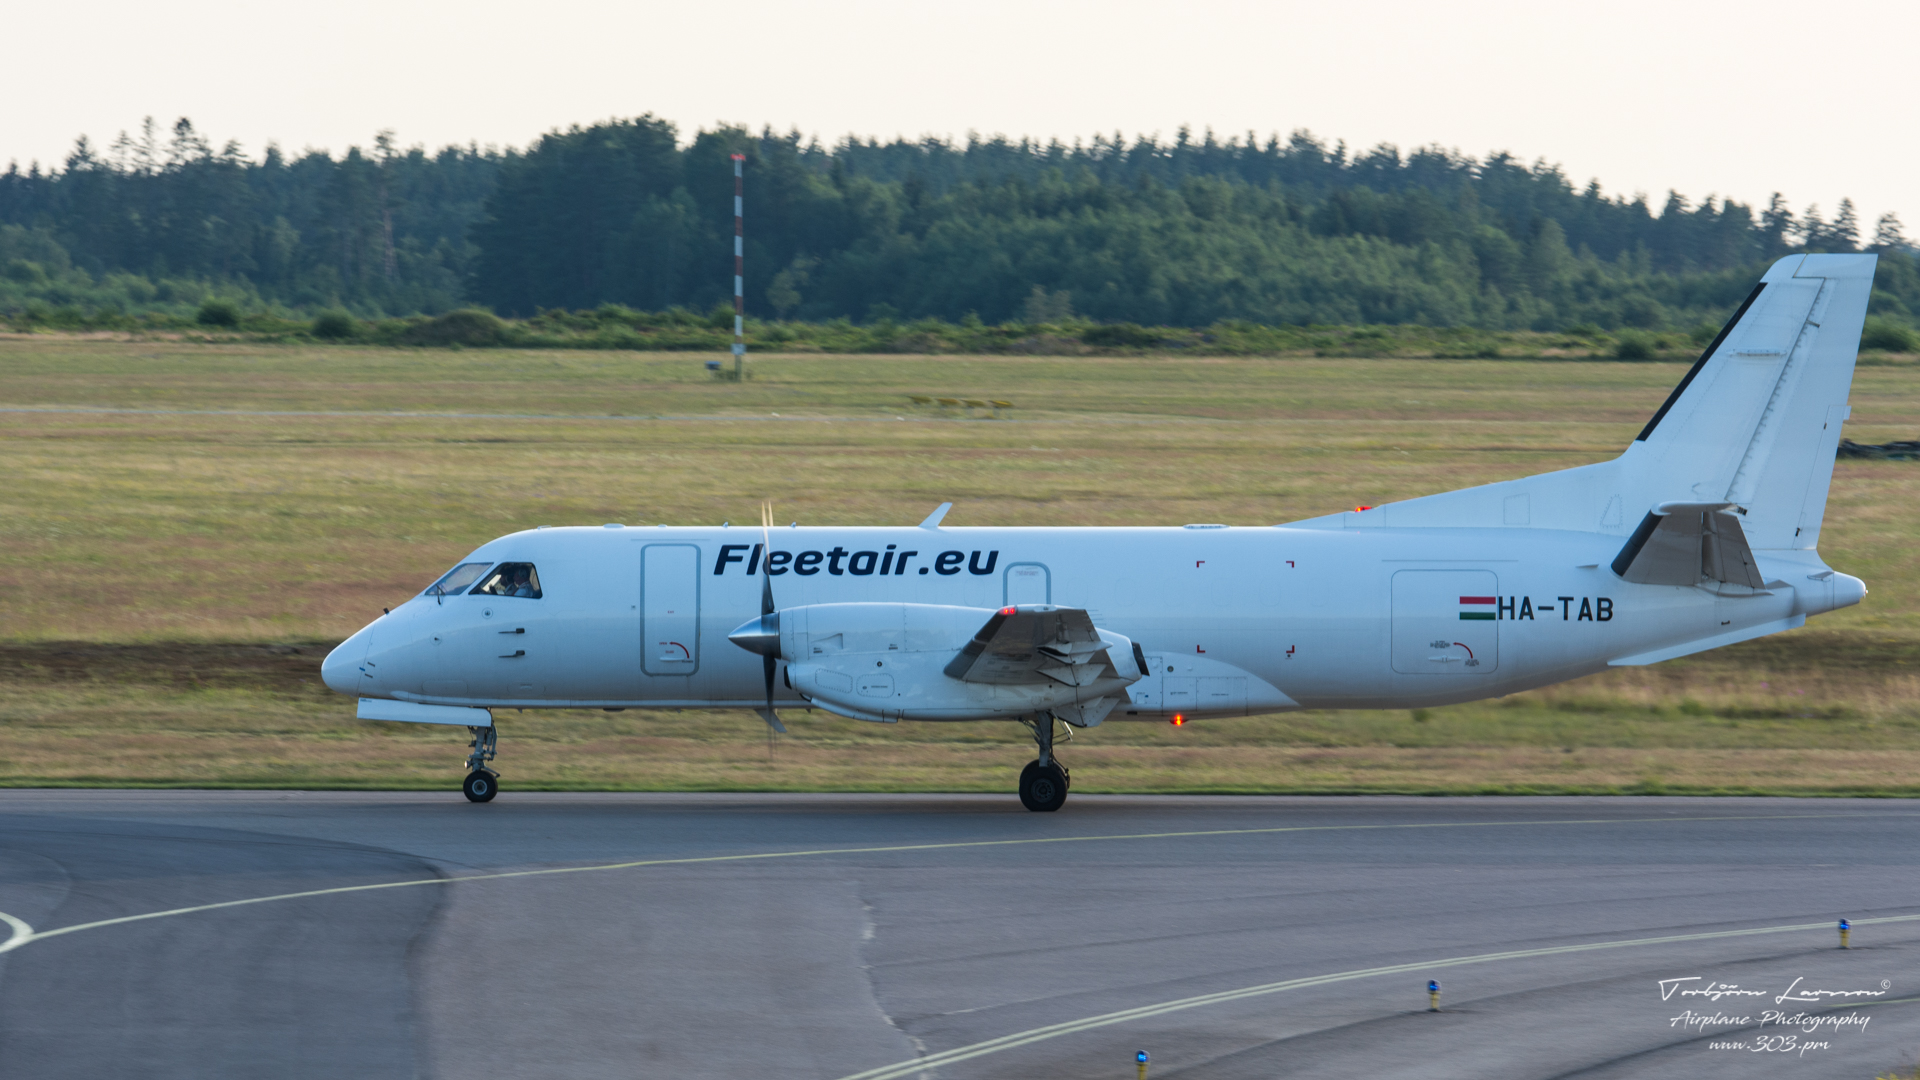 Saab-340-A-Fleetair-HA-TAB-TBE_7618